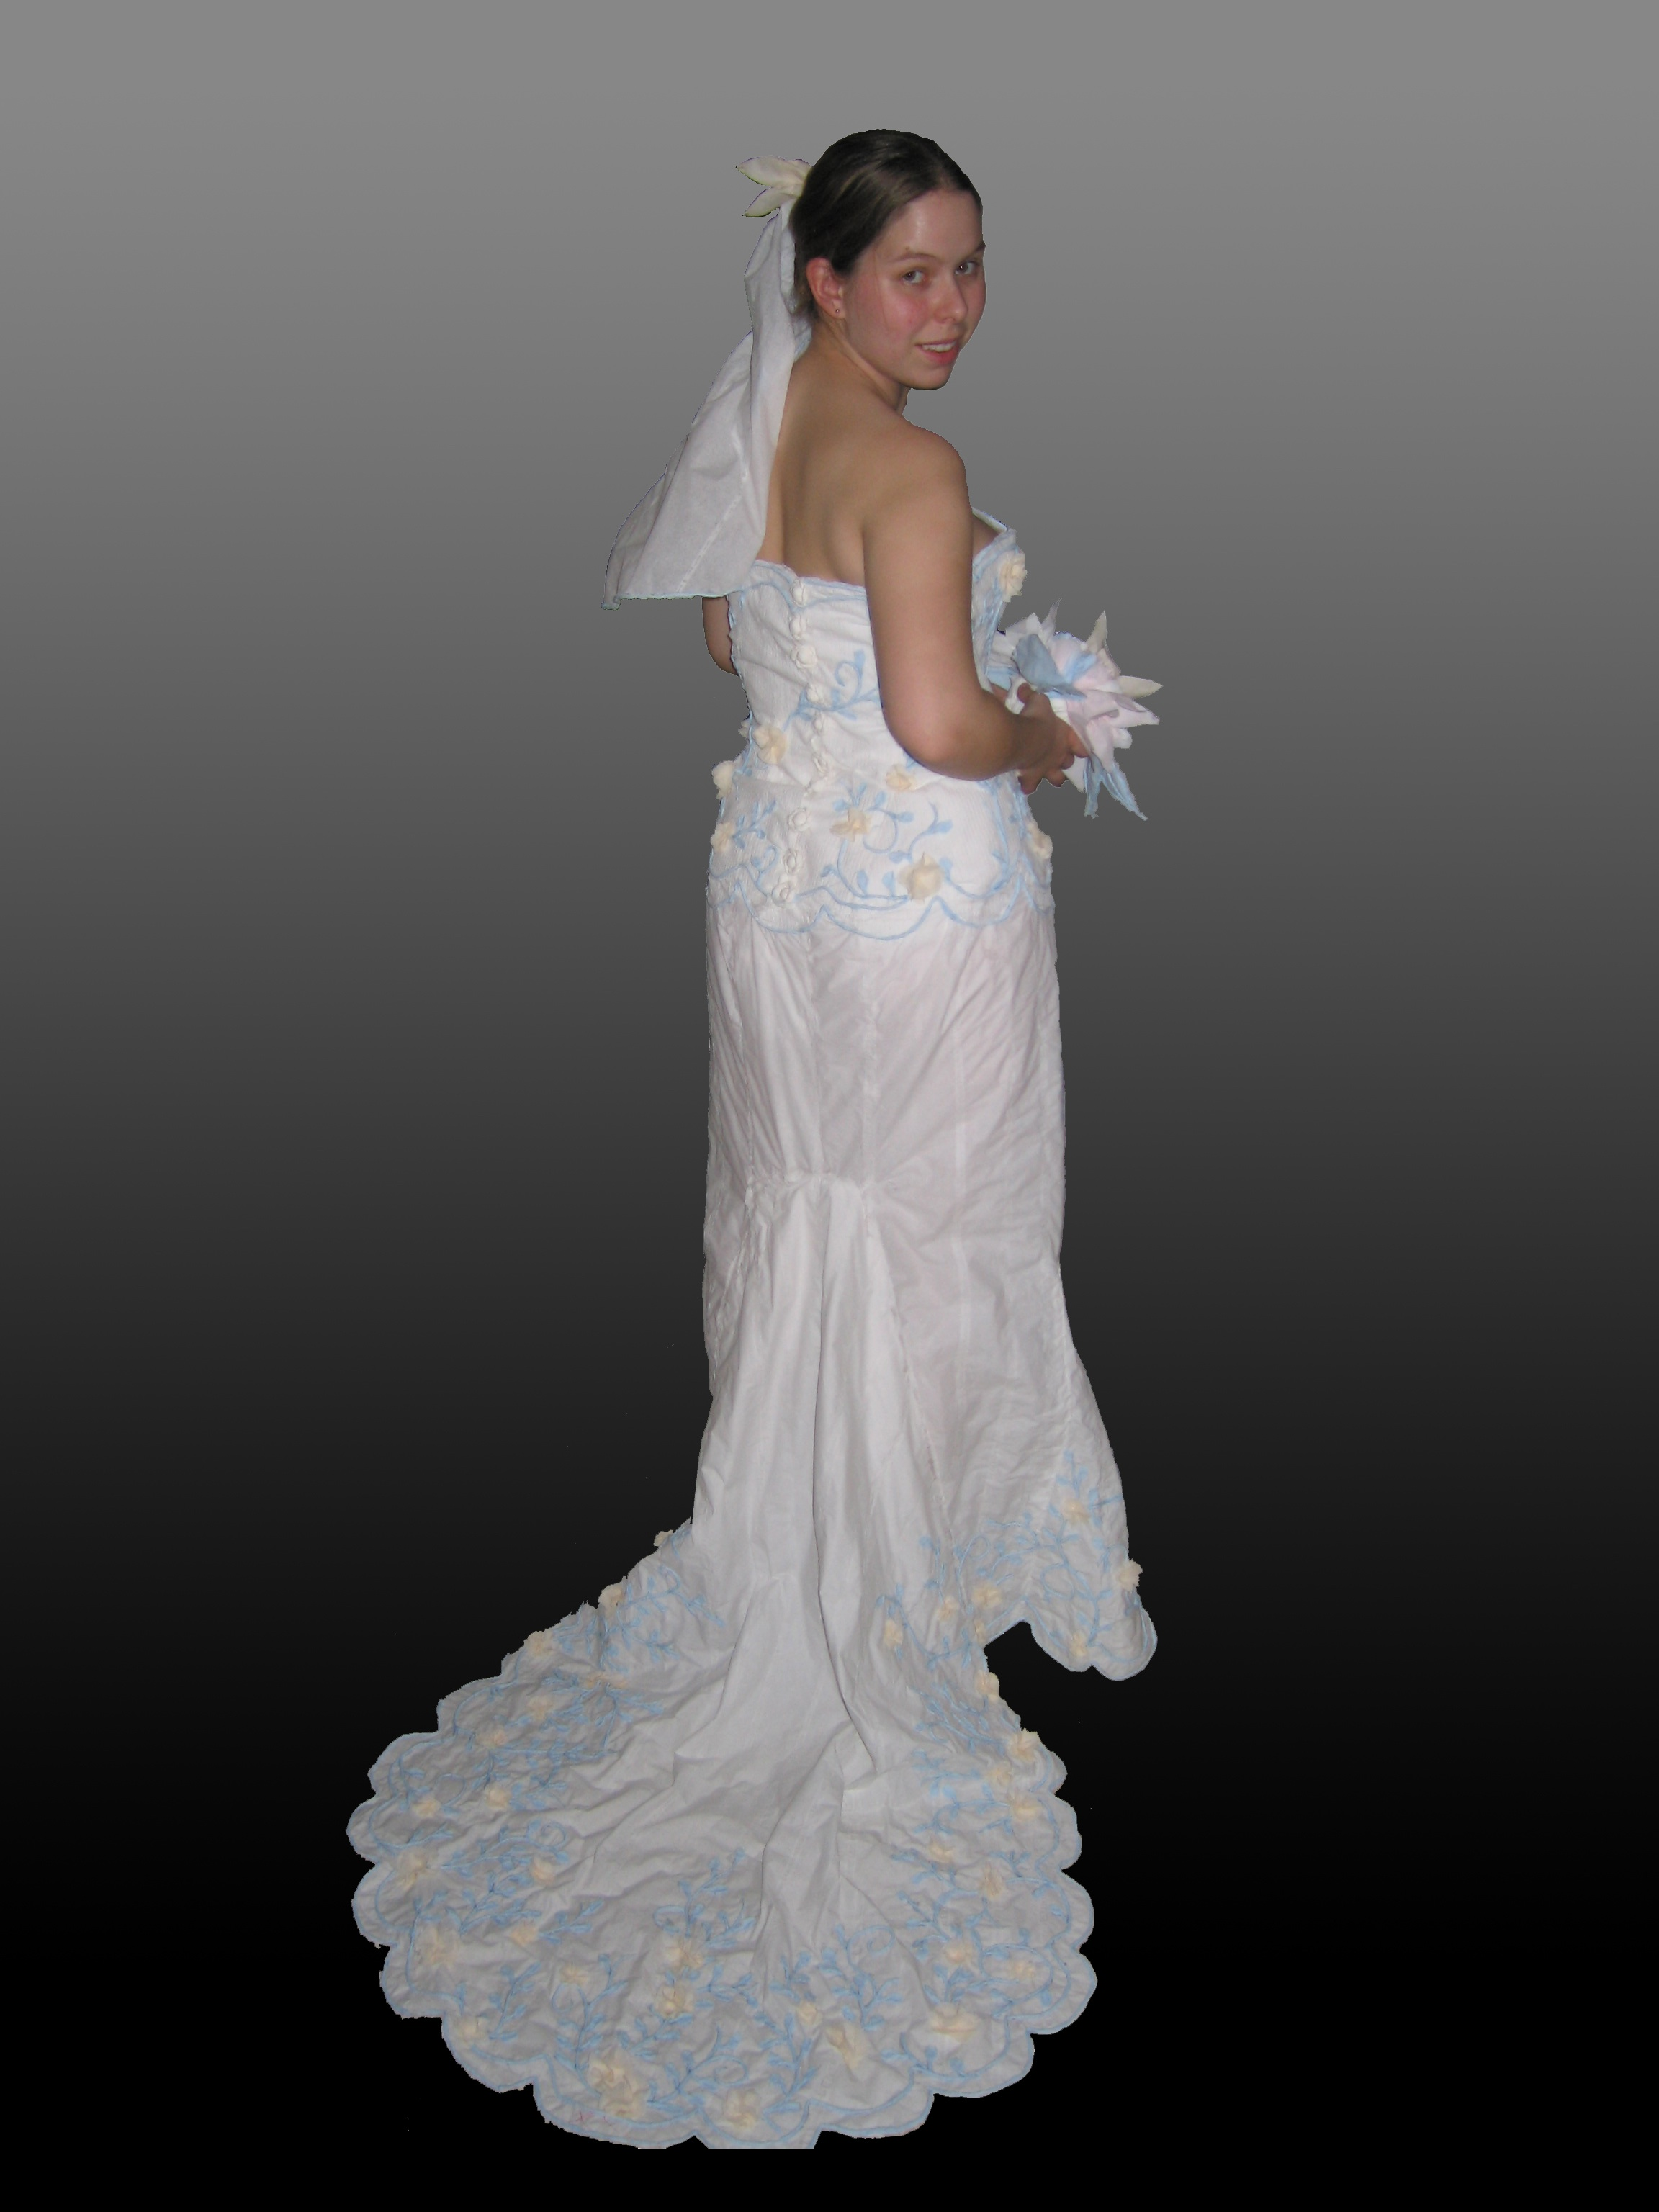 $500 wedding dresses photo - 1